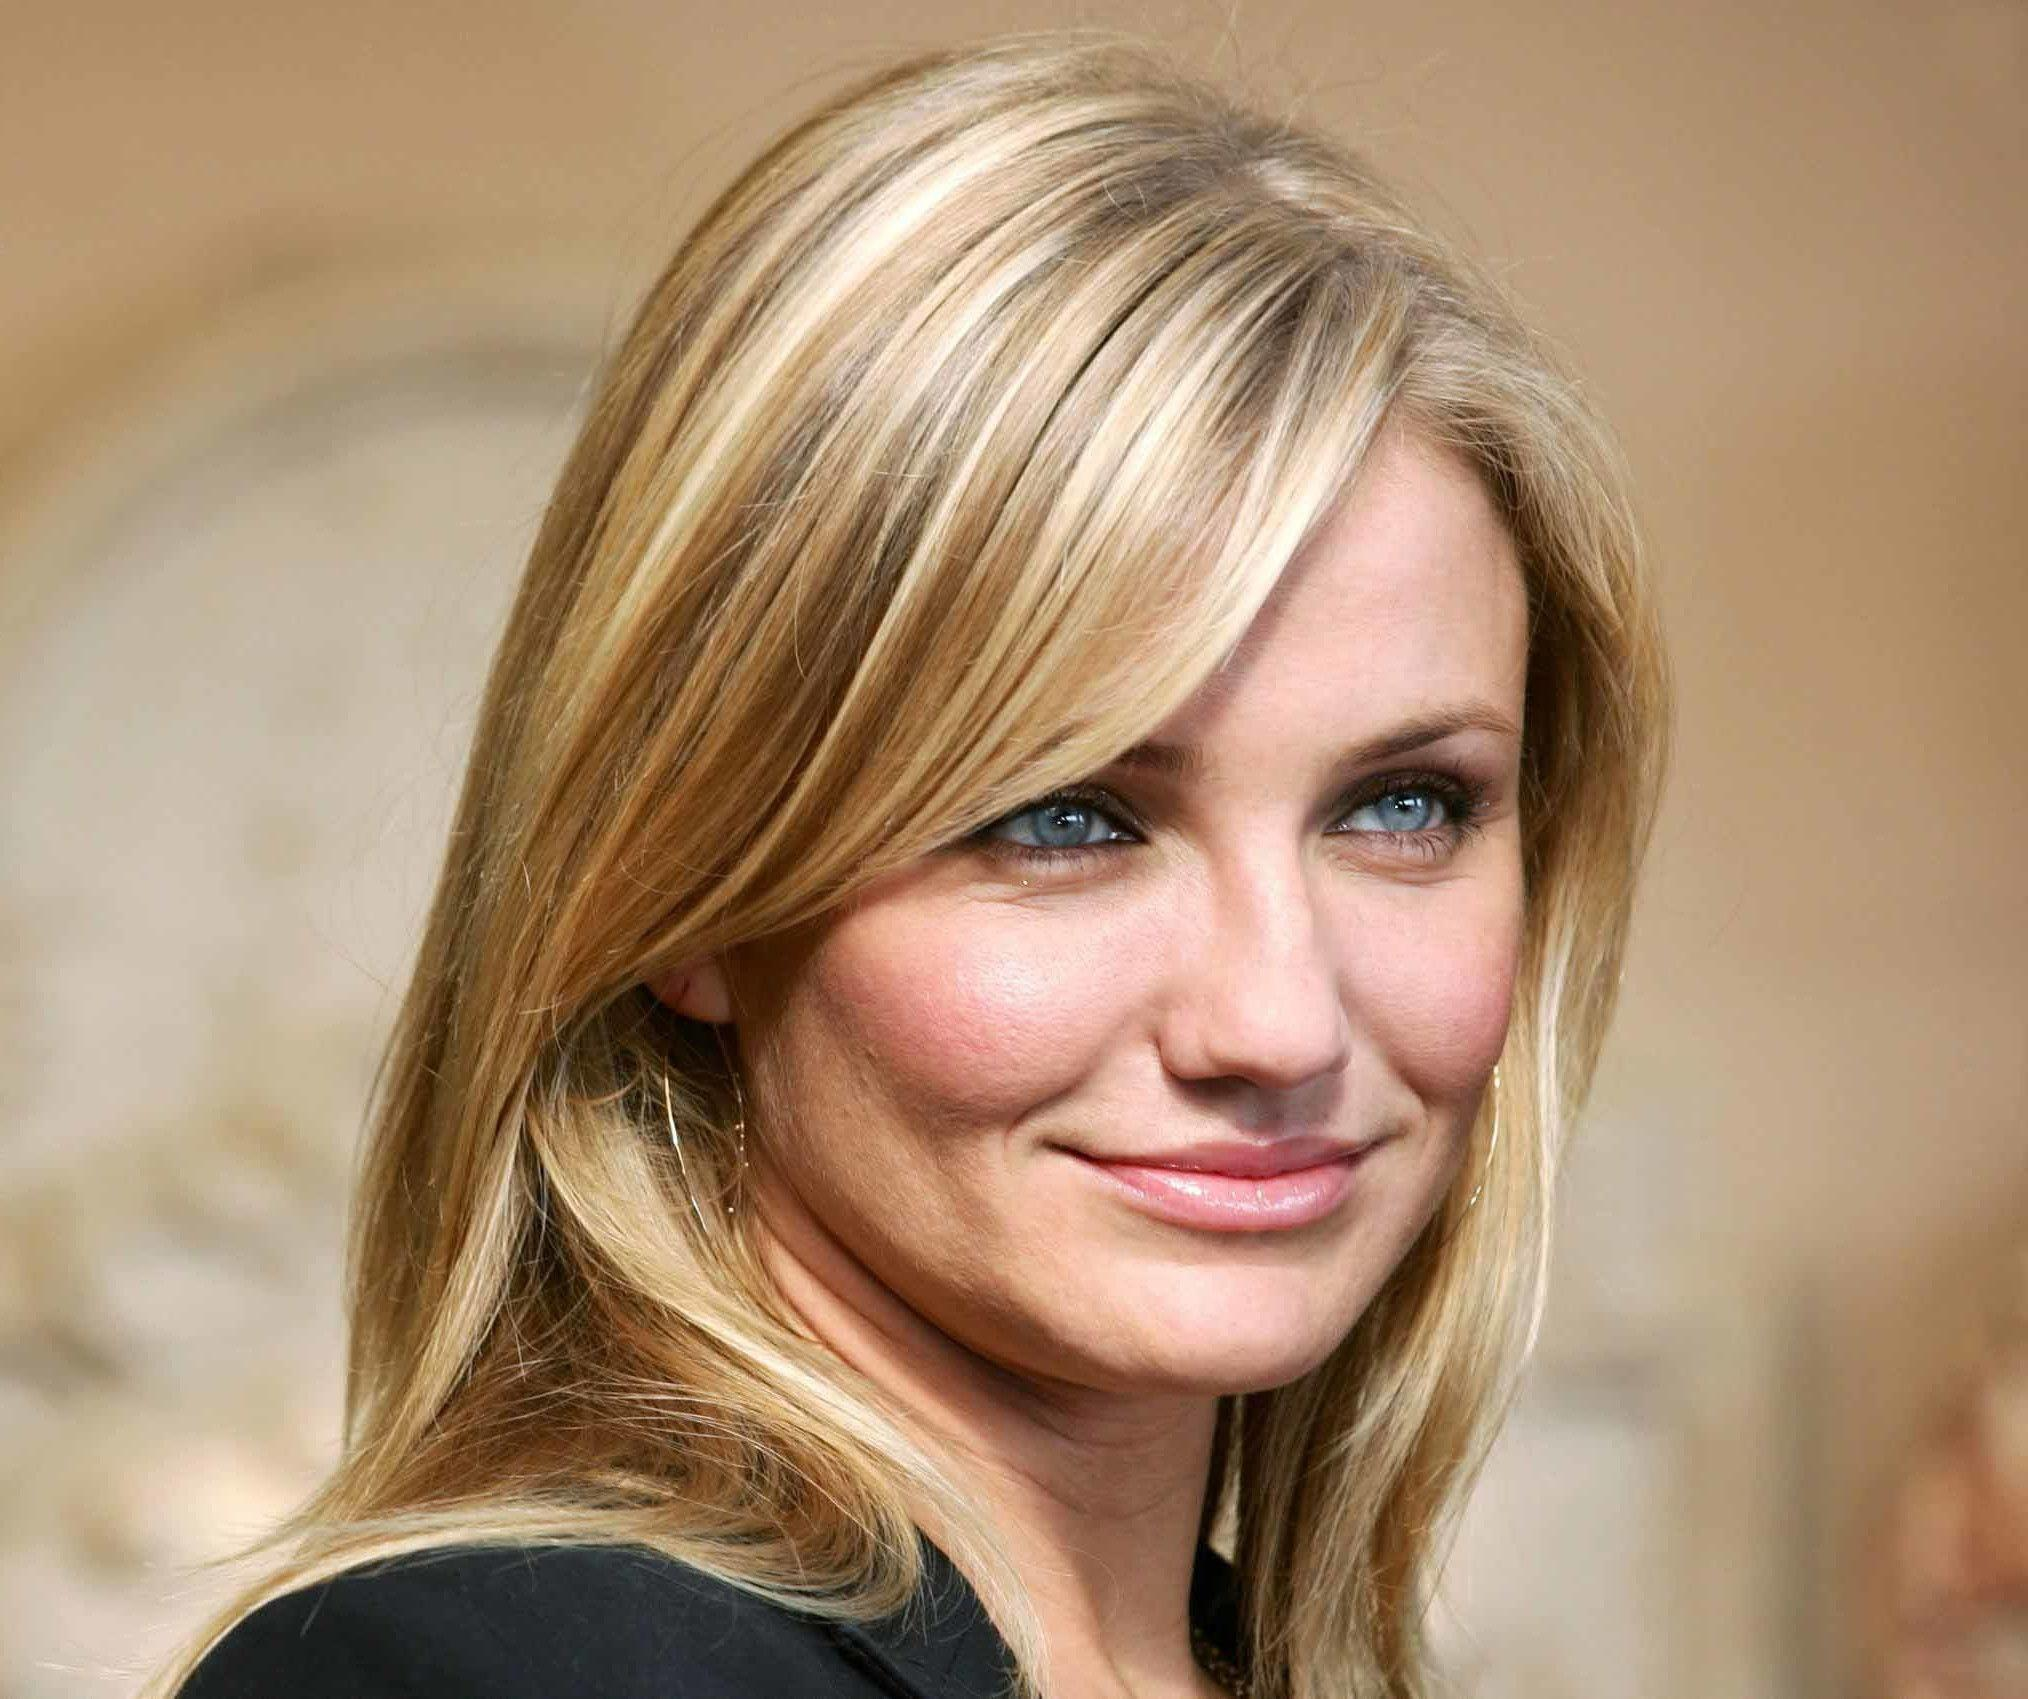 Cameron Diaz HD Wallpapers - BackgroundHDWallpapers